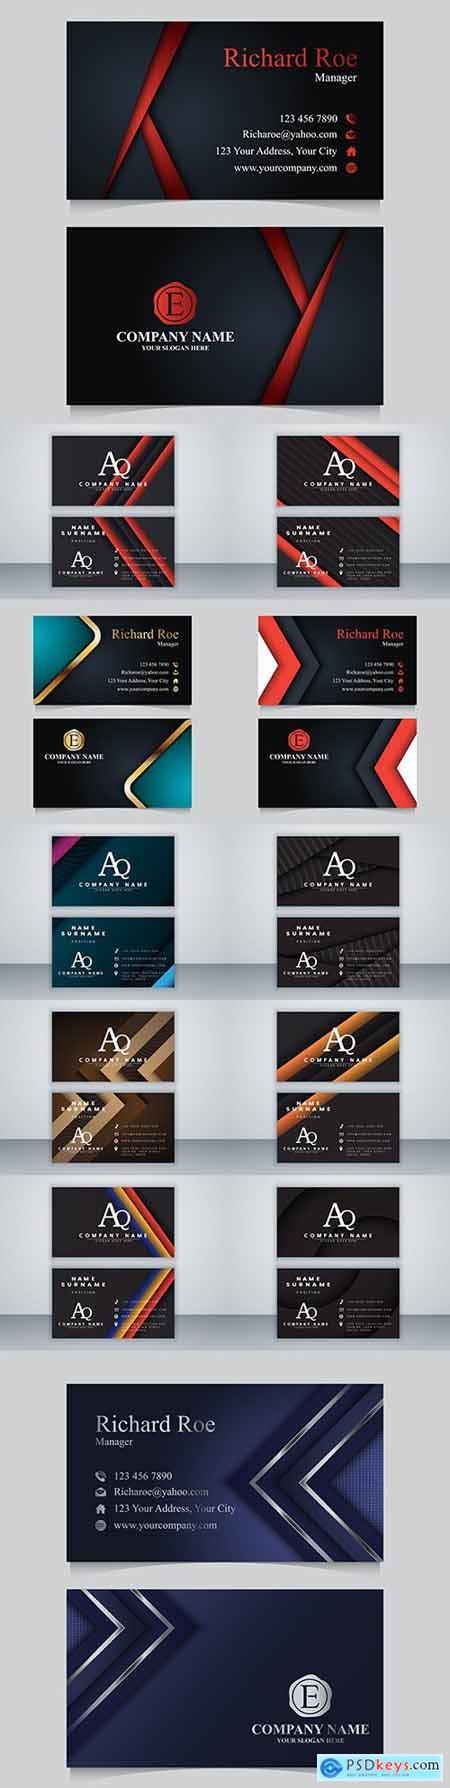 Business card template design on dark background 2